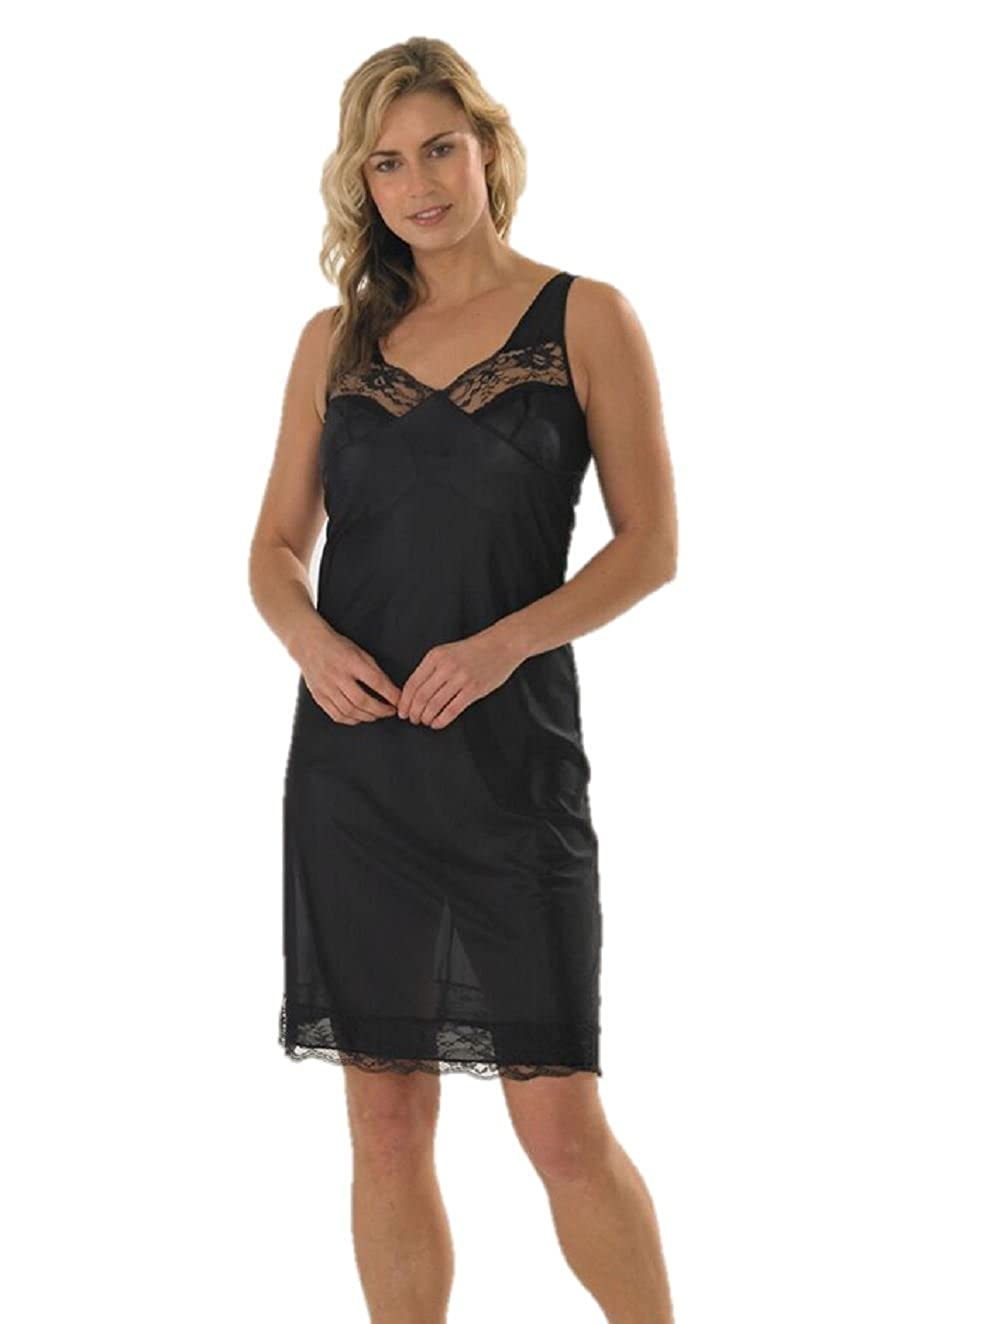 Marlon Ladies Full Slip Black 22